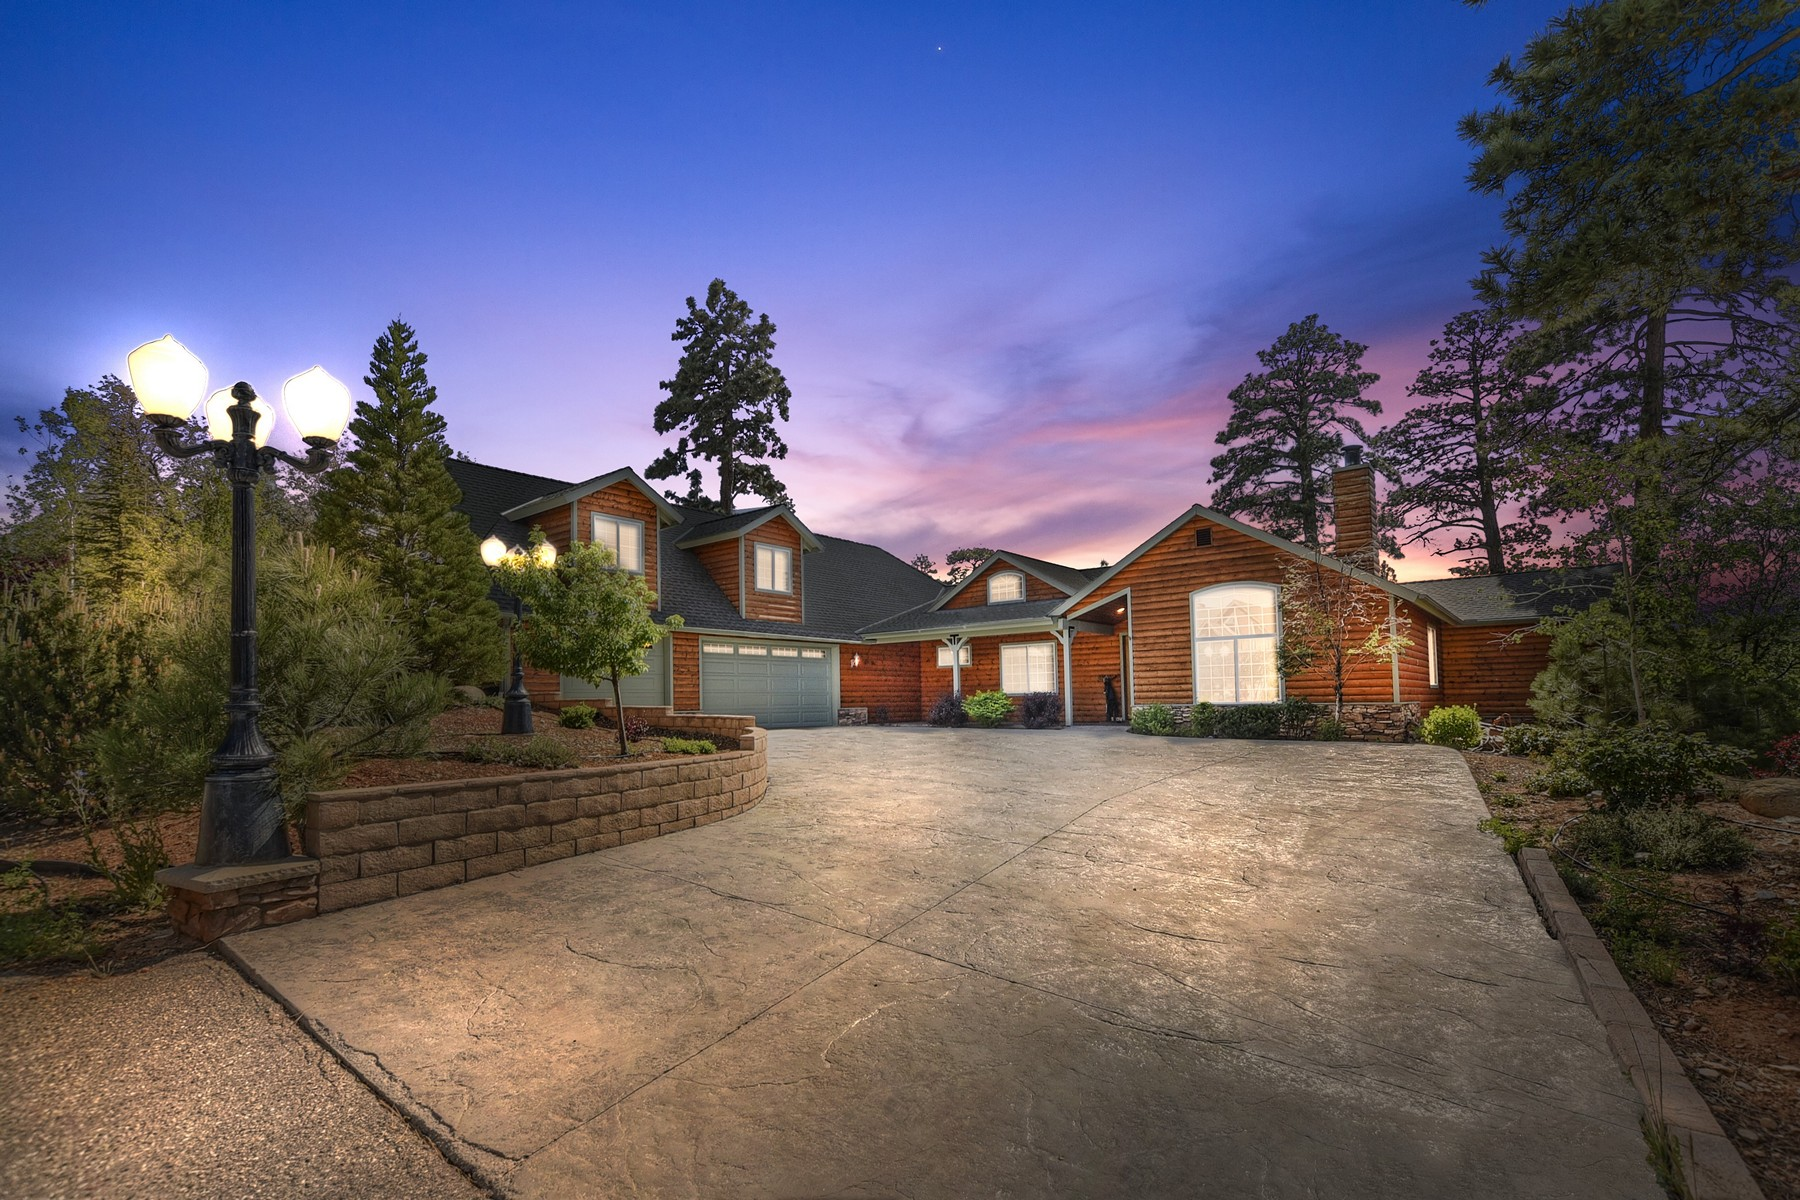 Property for Sale at 1623 Angels Camp Rd, Big Bear Lake, California, 92315 1623 Angels Camp Road Big Bear Lake, California 92315 United States